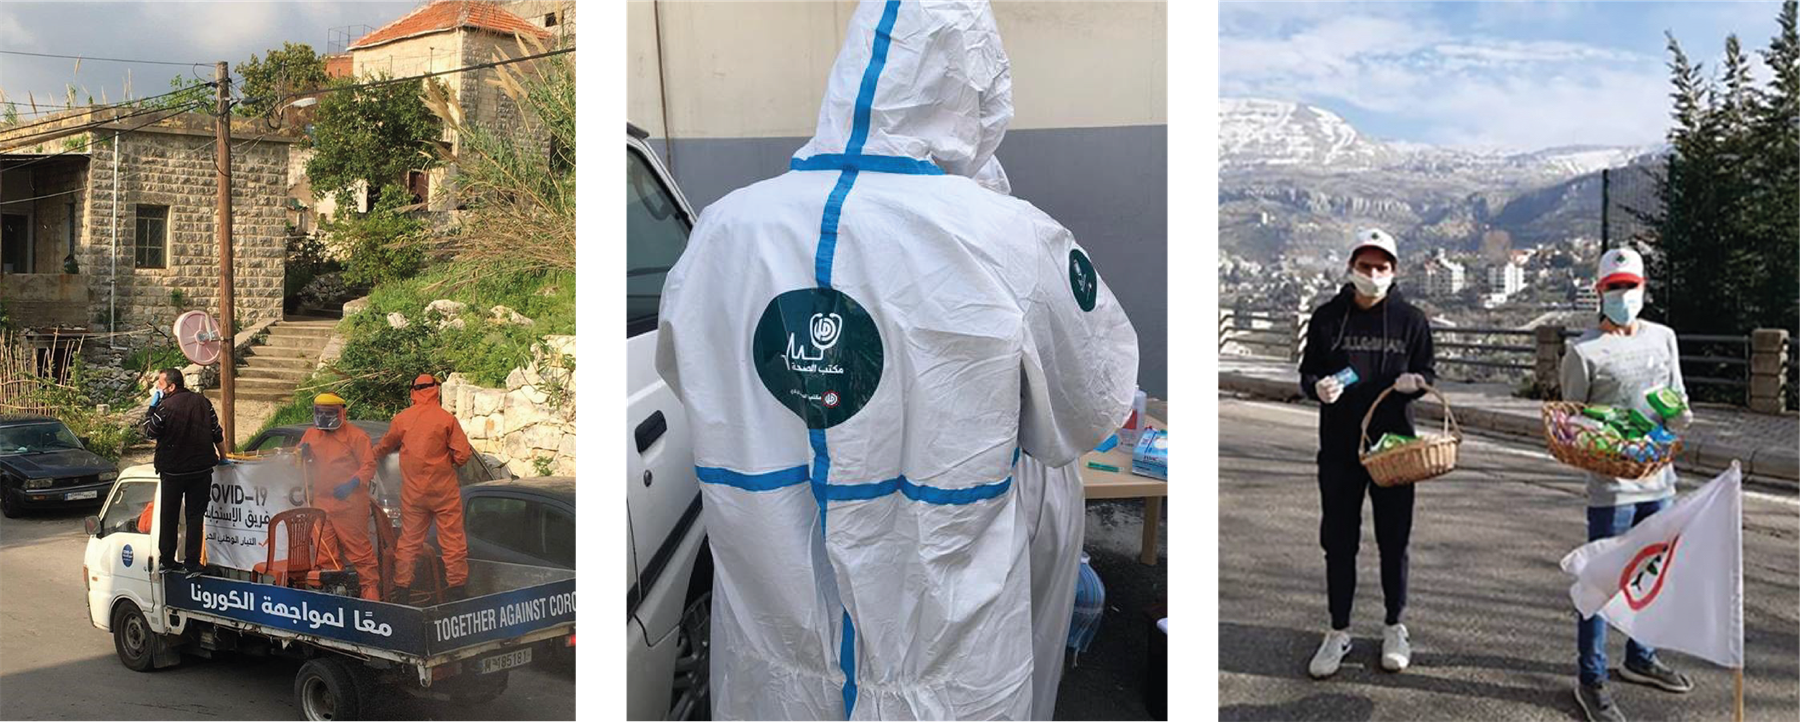 Political parties sterilize streets, distribute aid, masks, and sanitation products in photos posted on their facebook pages. The workers are wearing logos and colors of the parties they are representing.